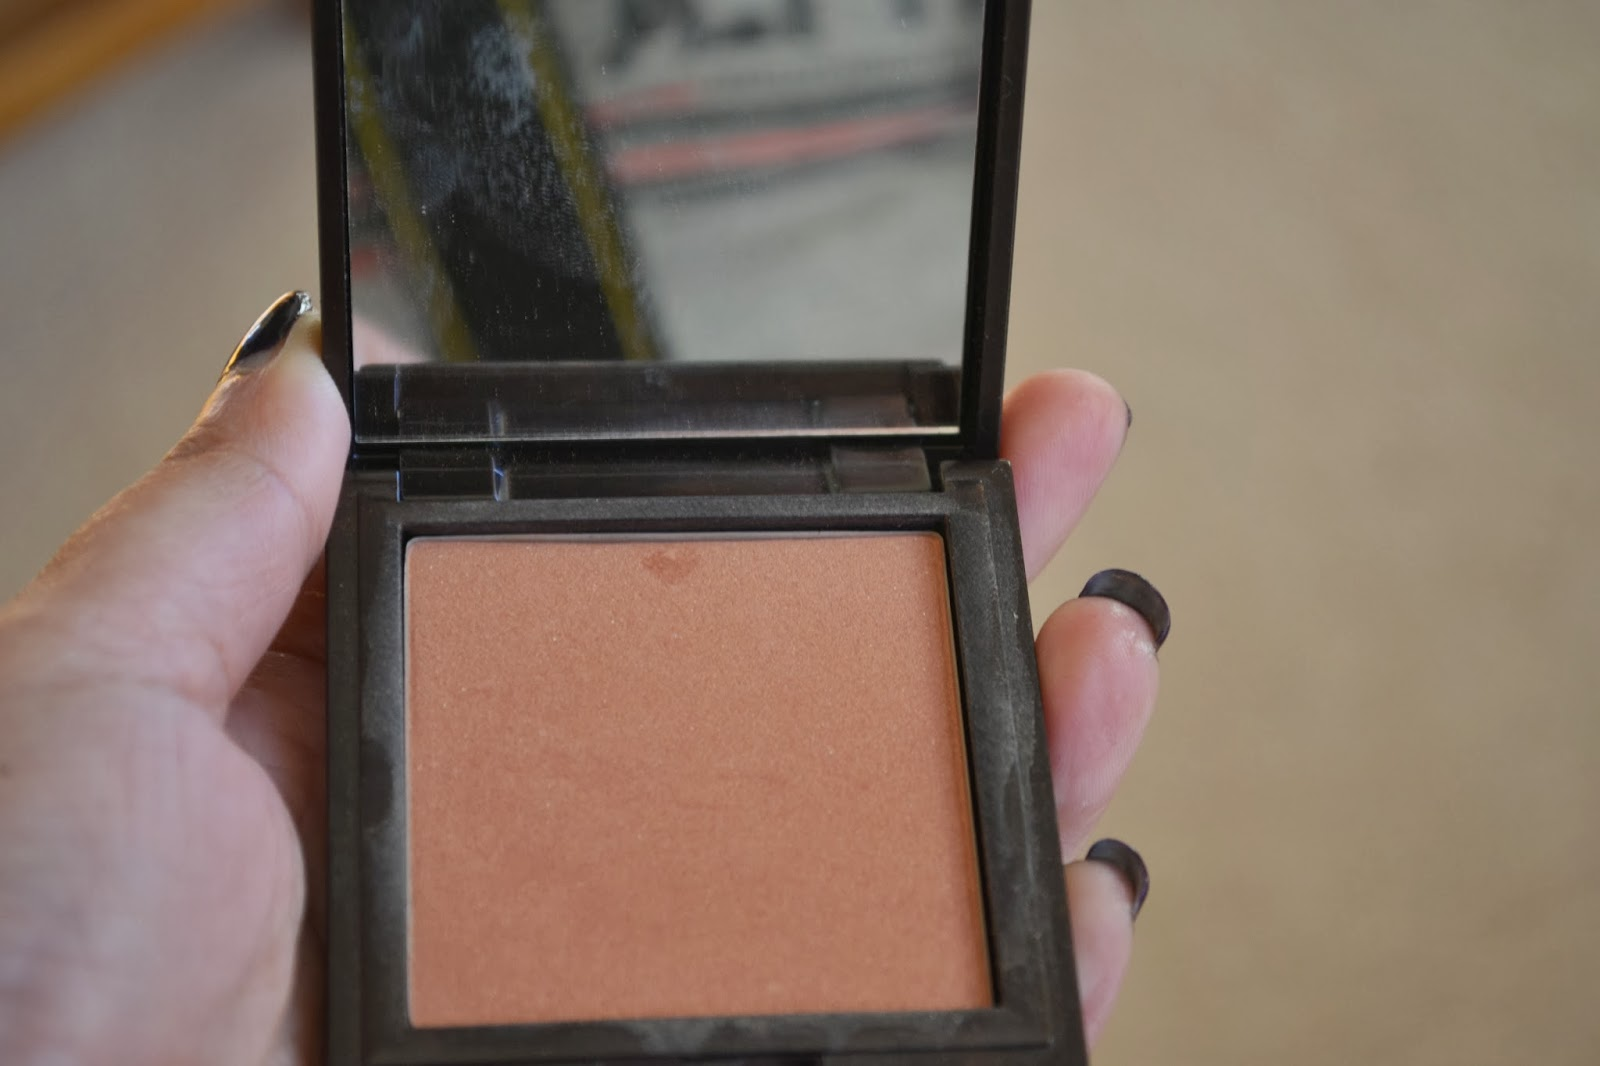 Korres Zea Mays Blush Luminous Finish / Velvety Texture in 42 Apricot